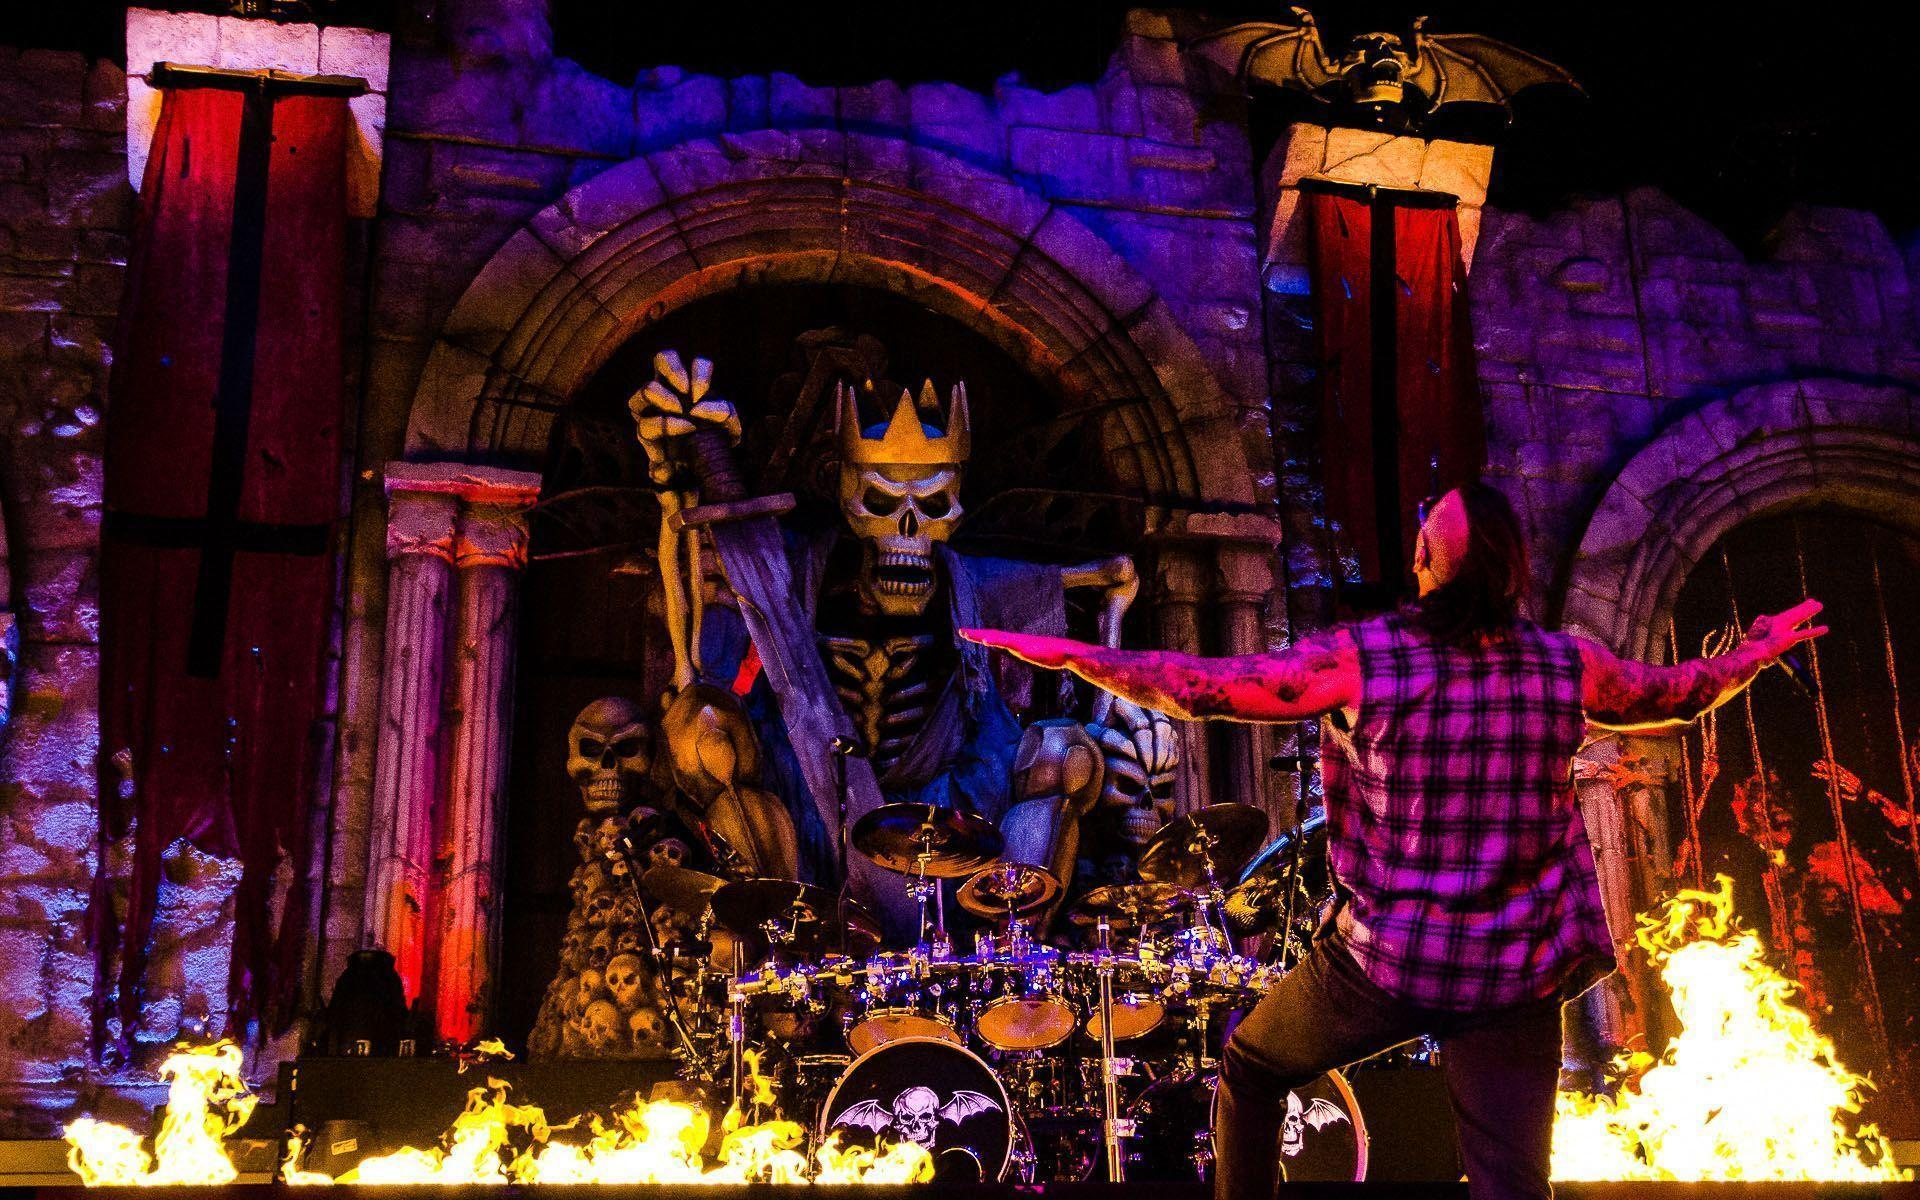 Avenged sevenfold 2016 wallpapers wallpaper cave avenged sevenfold 2015 wallpapers wallpaper cave voltagebd Images